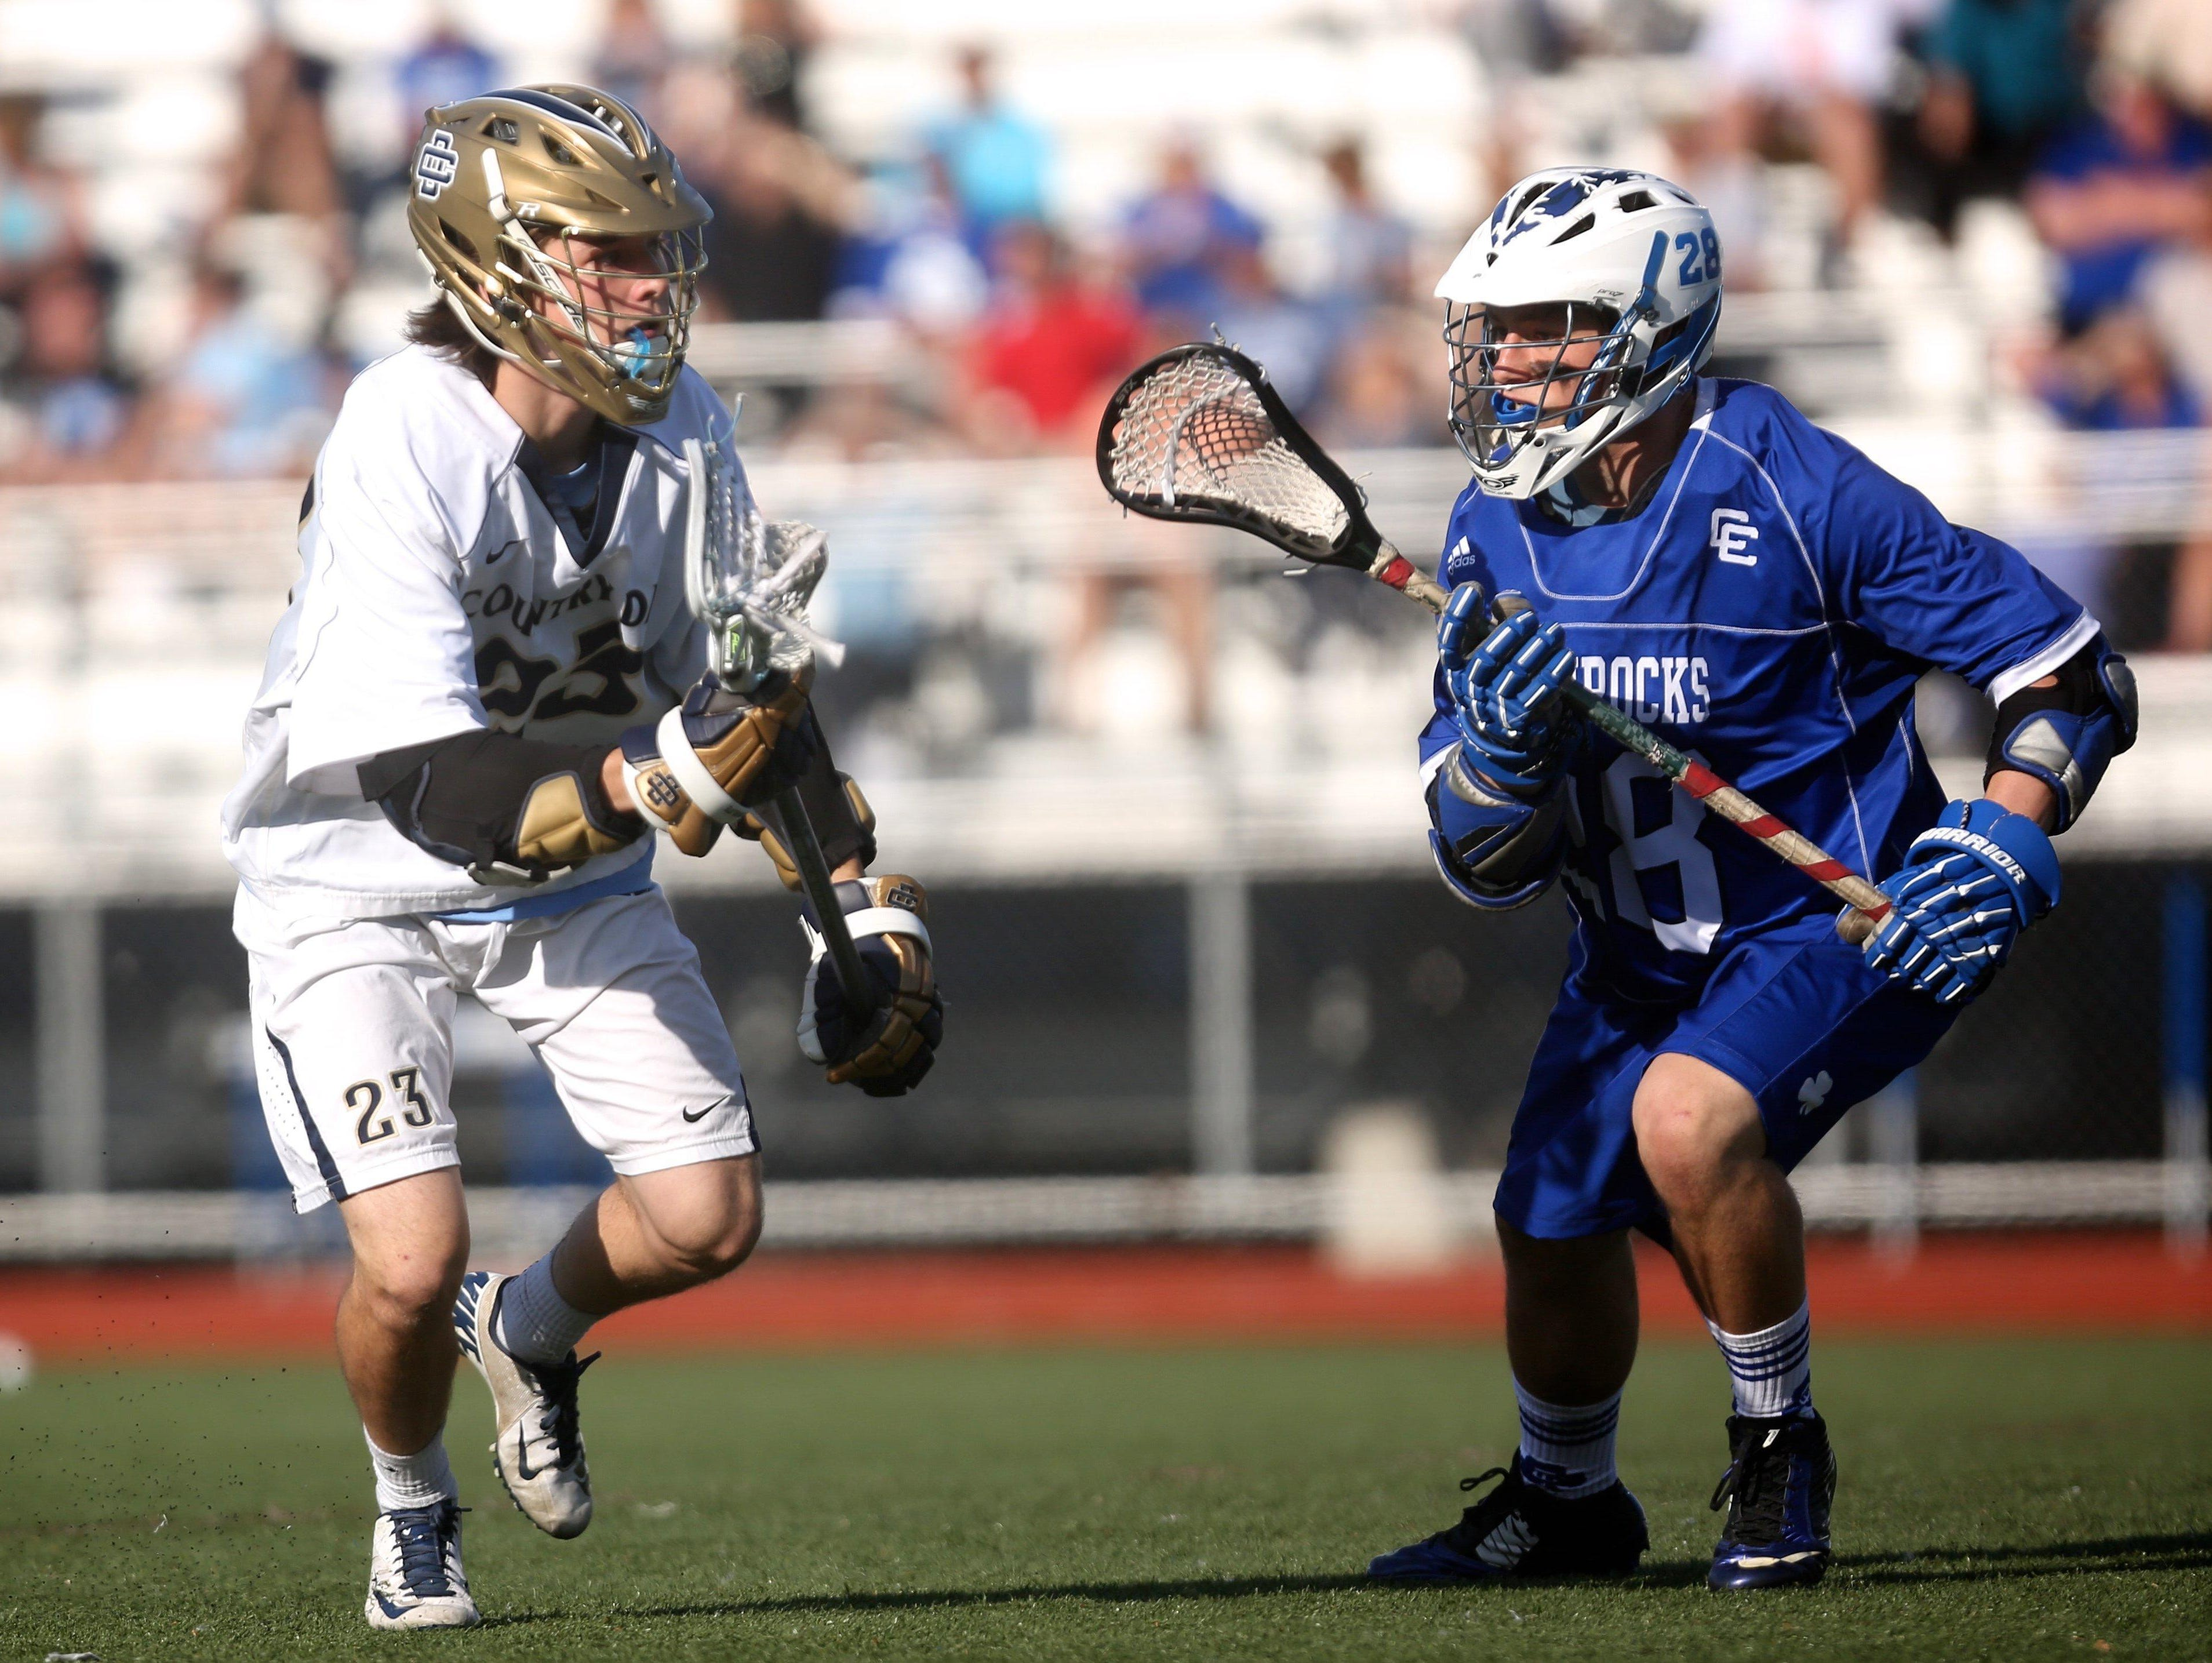 Birmingham Detroit Country Day's Brendan Dolan runs to the goal past Novi Detroit Catholic Central's captain Matthew Foreman during Catholic Central's 14-13 win to advance to Saturday's Division 1 state final.